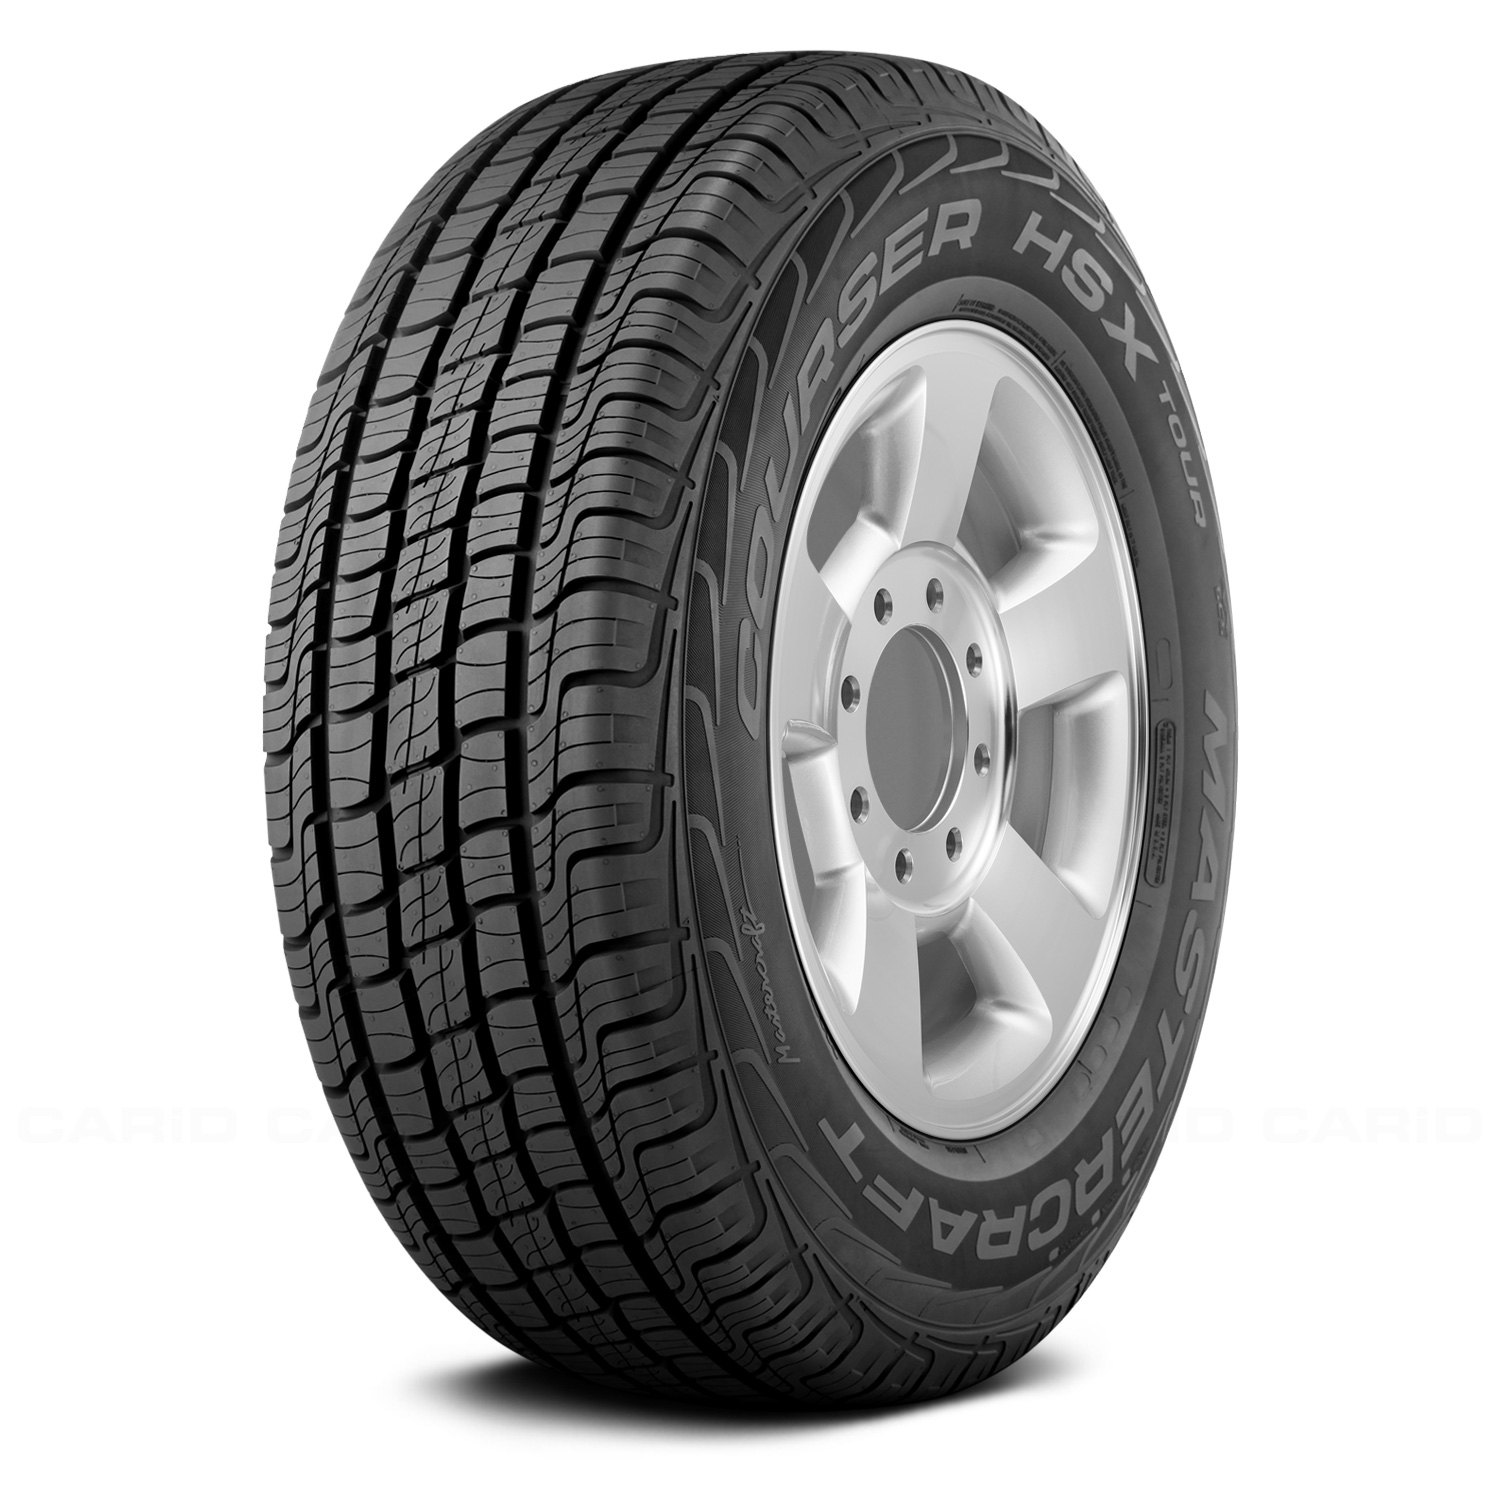 Mastercraft Courser HSX Tour Radial Tire 275//60R20 115T